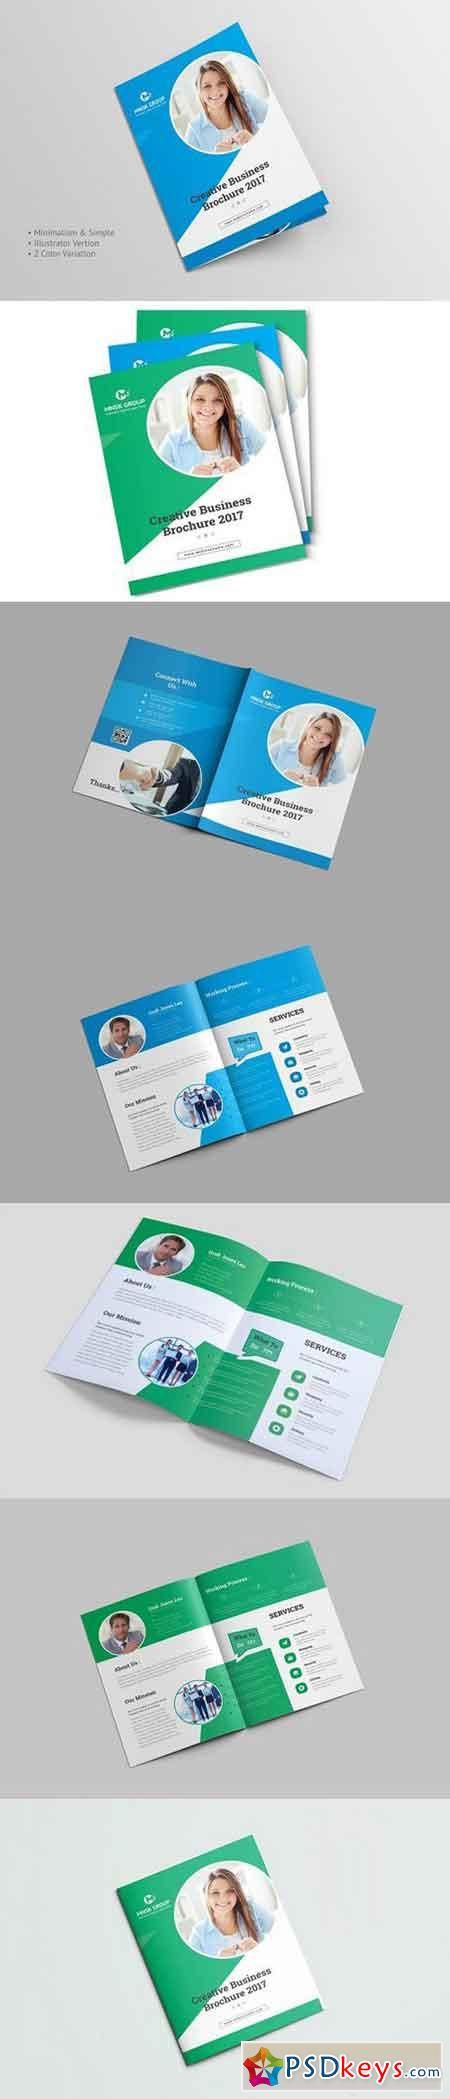 Bi fold brochure 1498719 free download photoshop vector for Bi fold brochure template illustrator